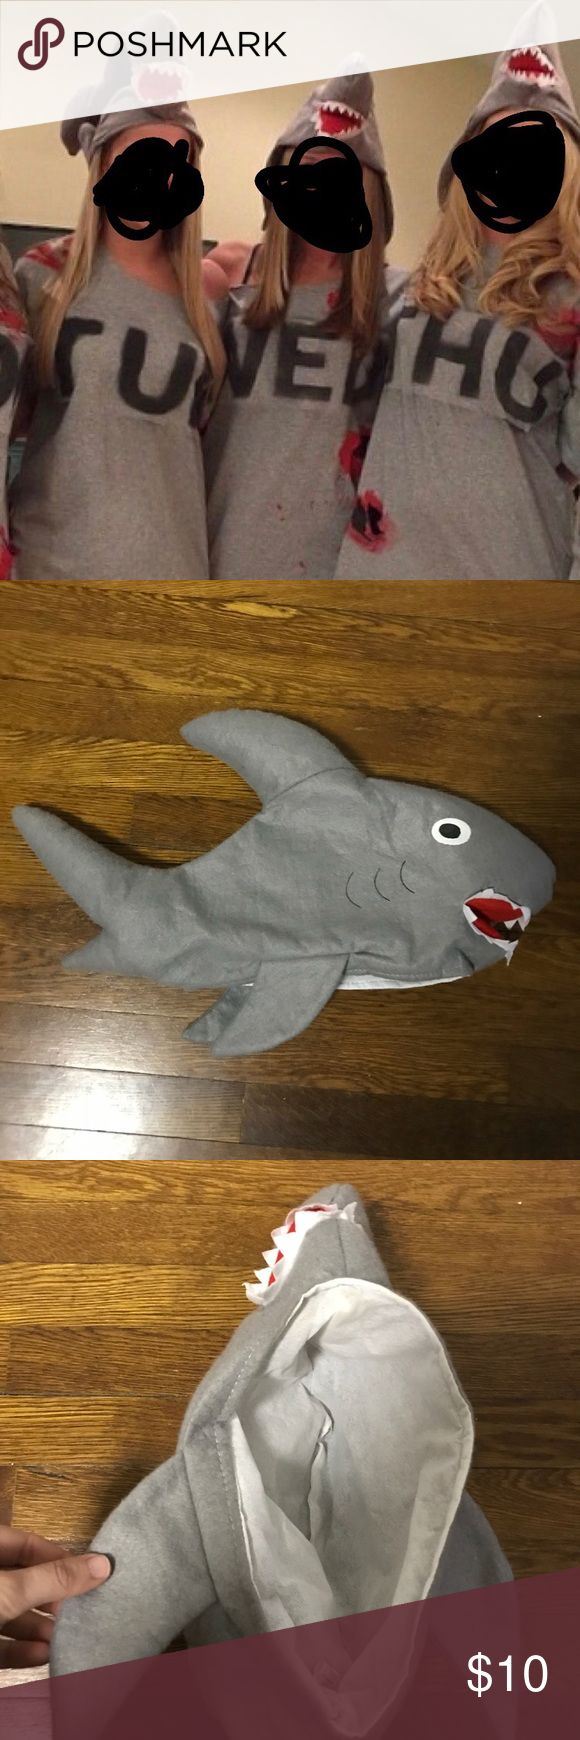 """Shark hat Shark hat. Great for Halloween costume!!! (Wore it as """"shark week"""" with multiple other people.) Accessories Hats"""